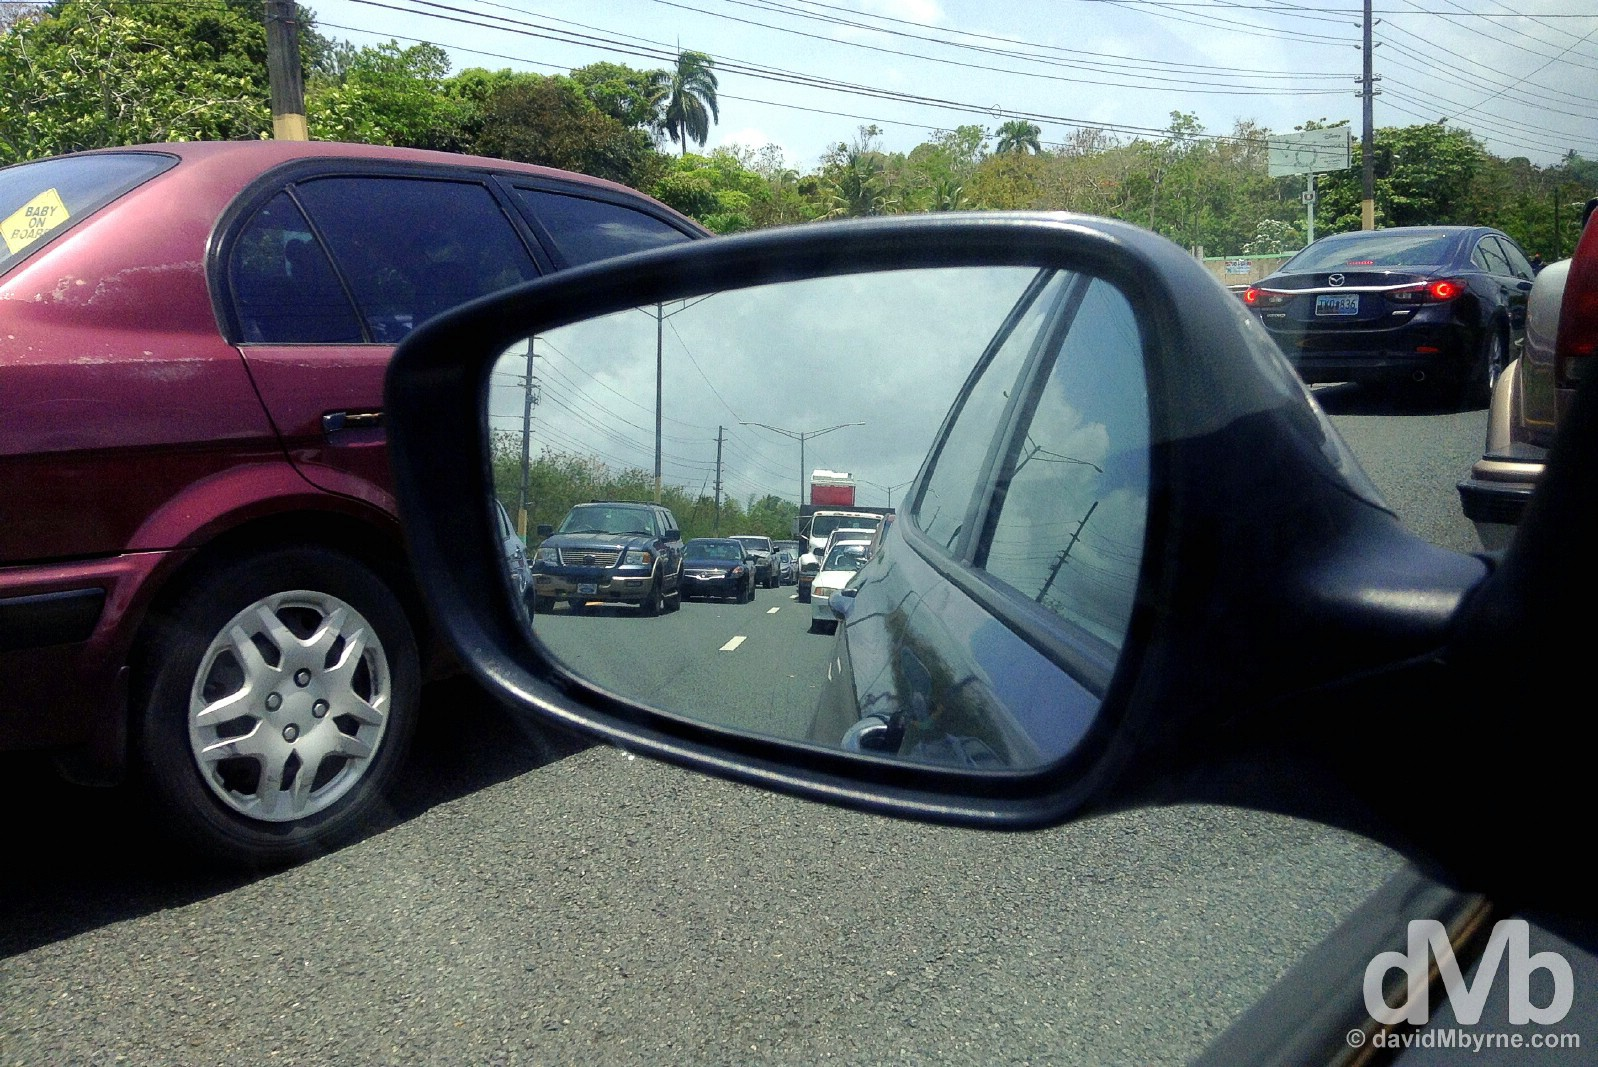 A flight-missing traffic jam on Highway 3 (PR-3) outside Fajardo eastern Puerto Rico, Greater Antilles. June 6, 2015.